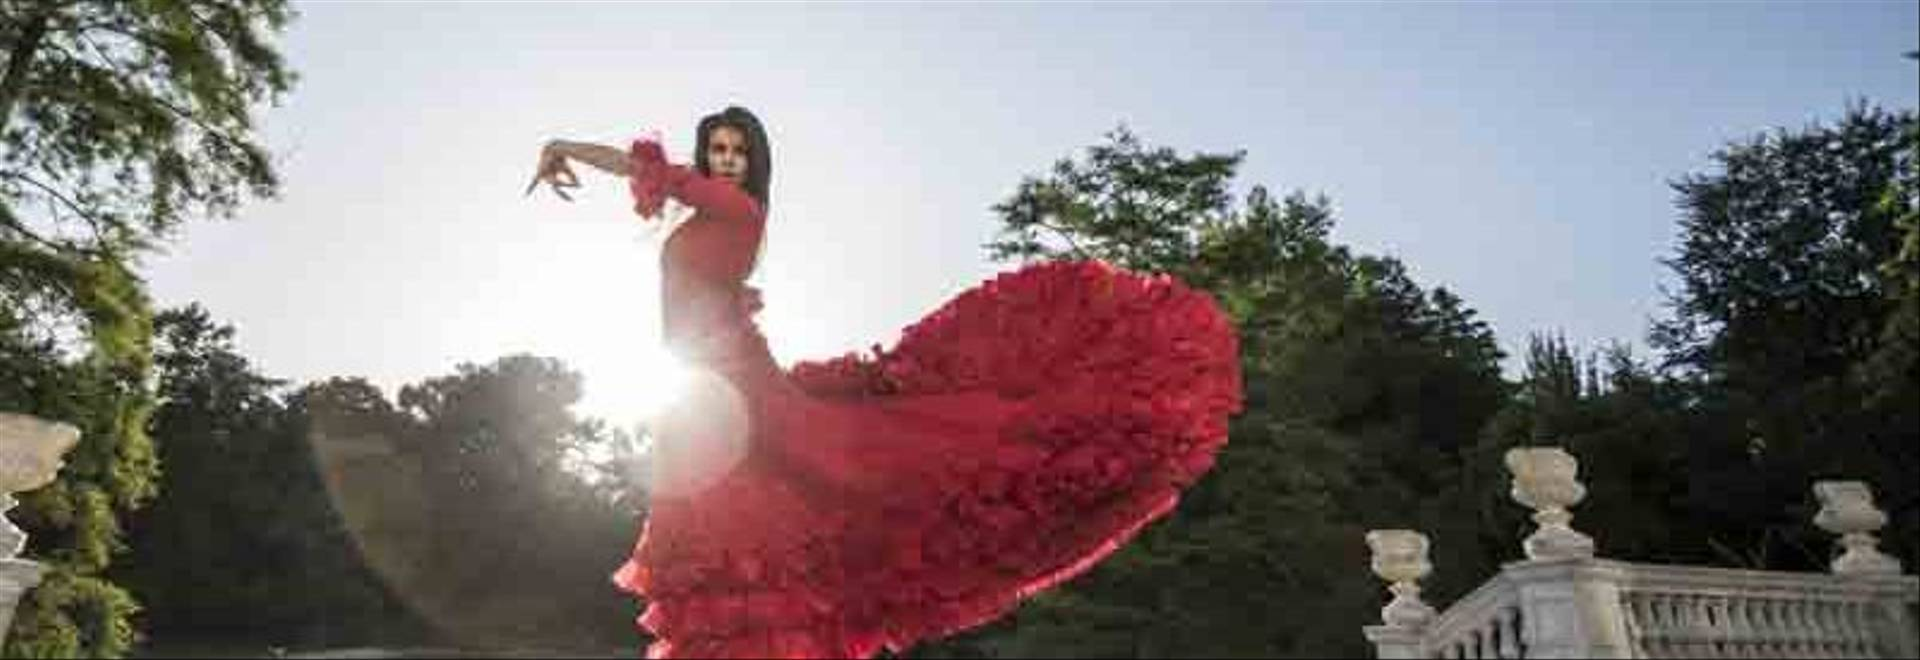 Woman dressed in red dancing flamenco on terrace at backlight